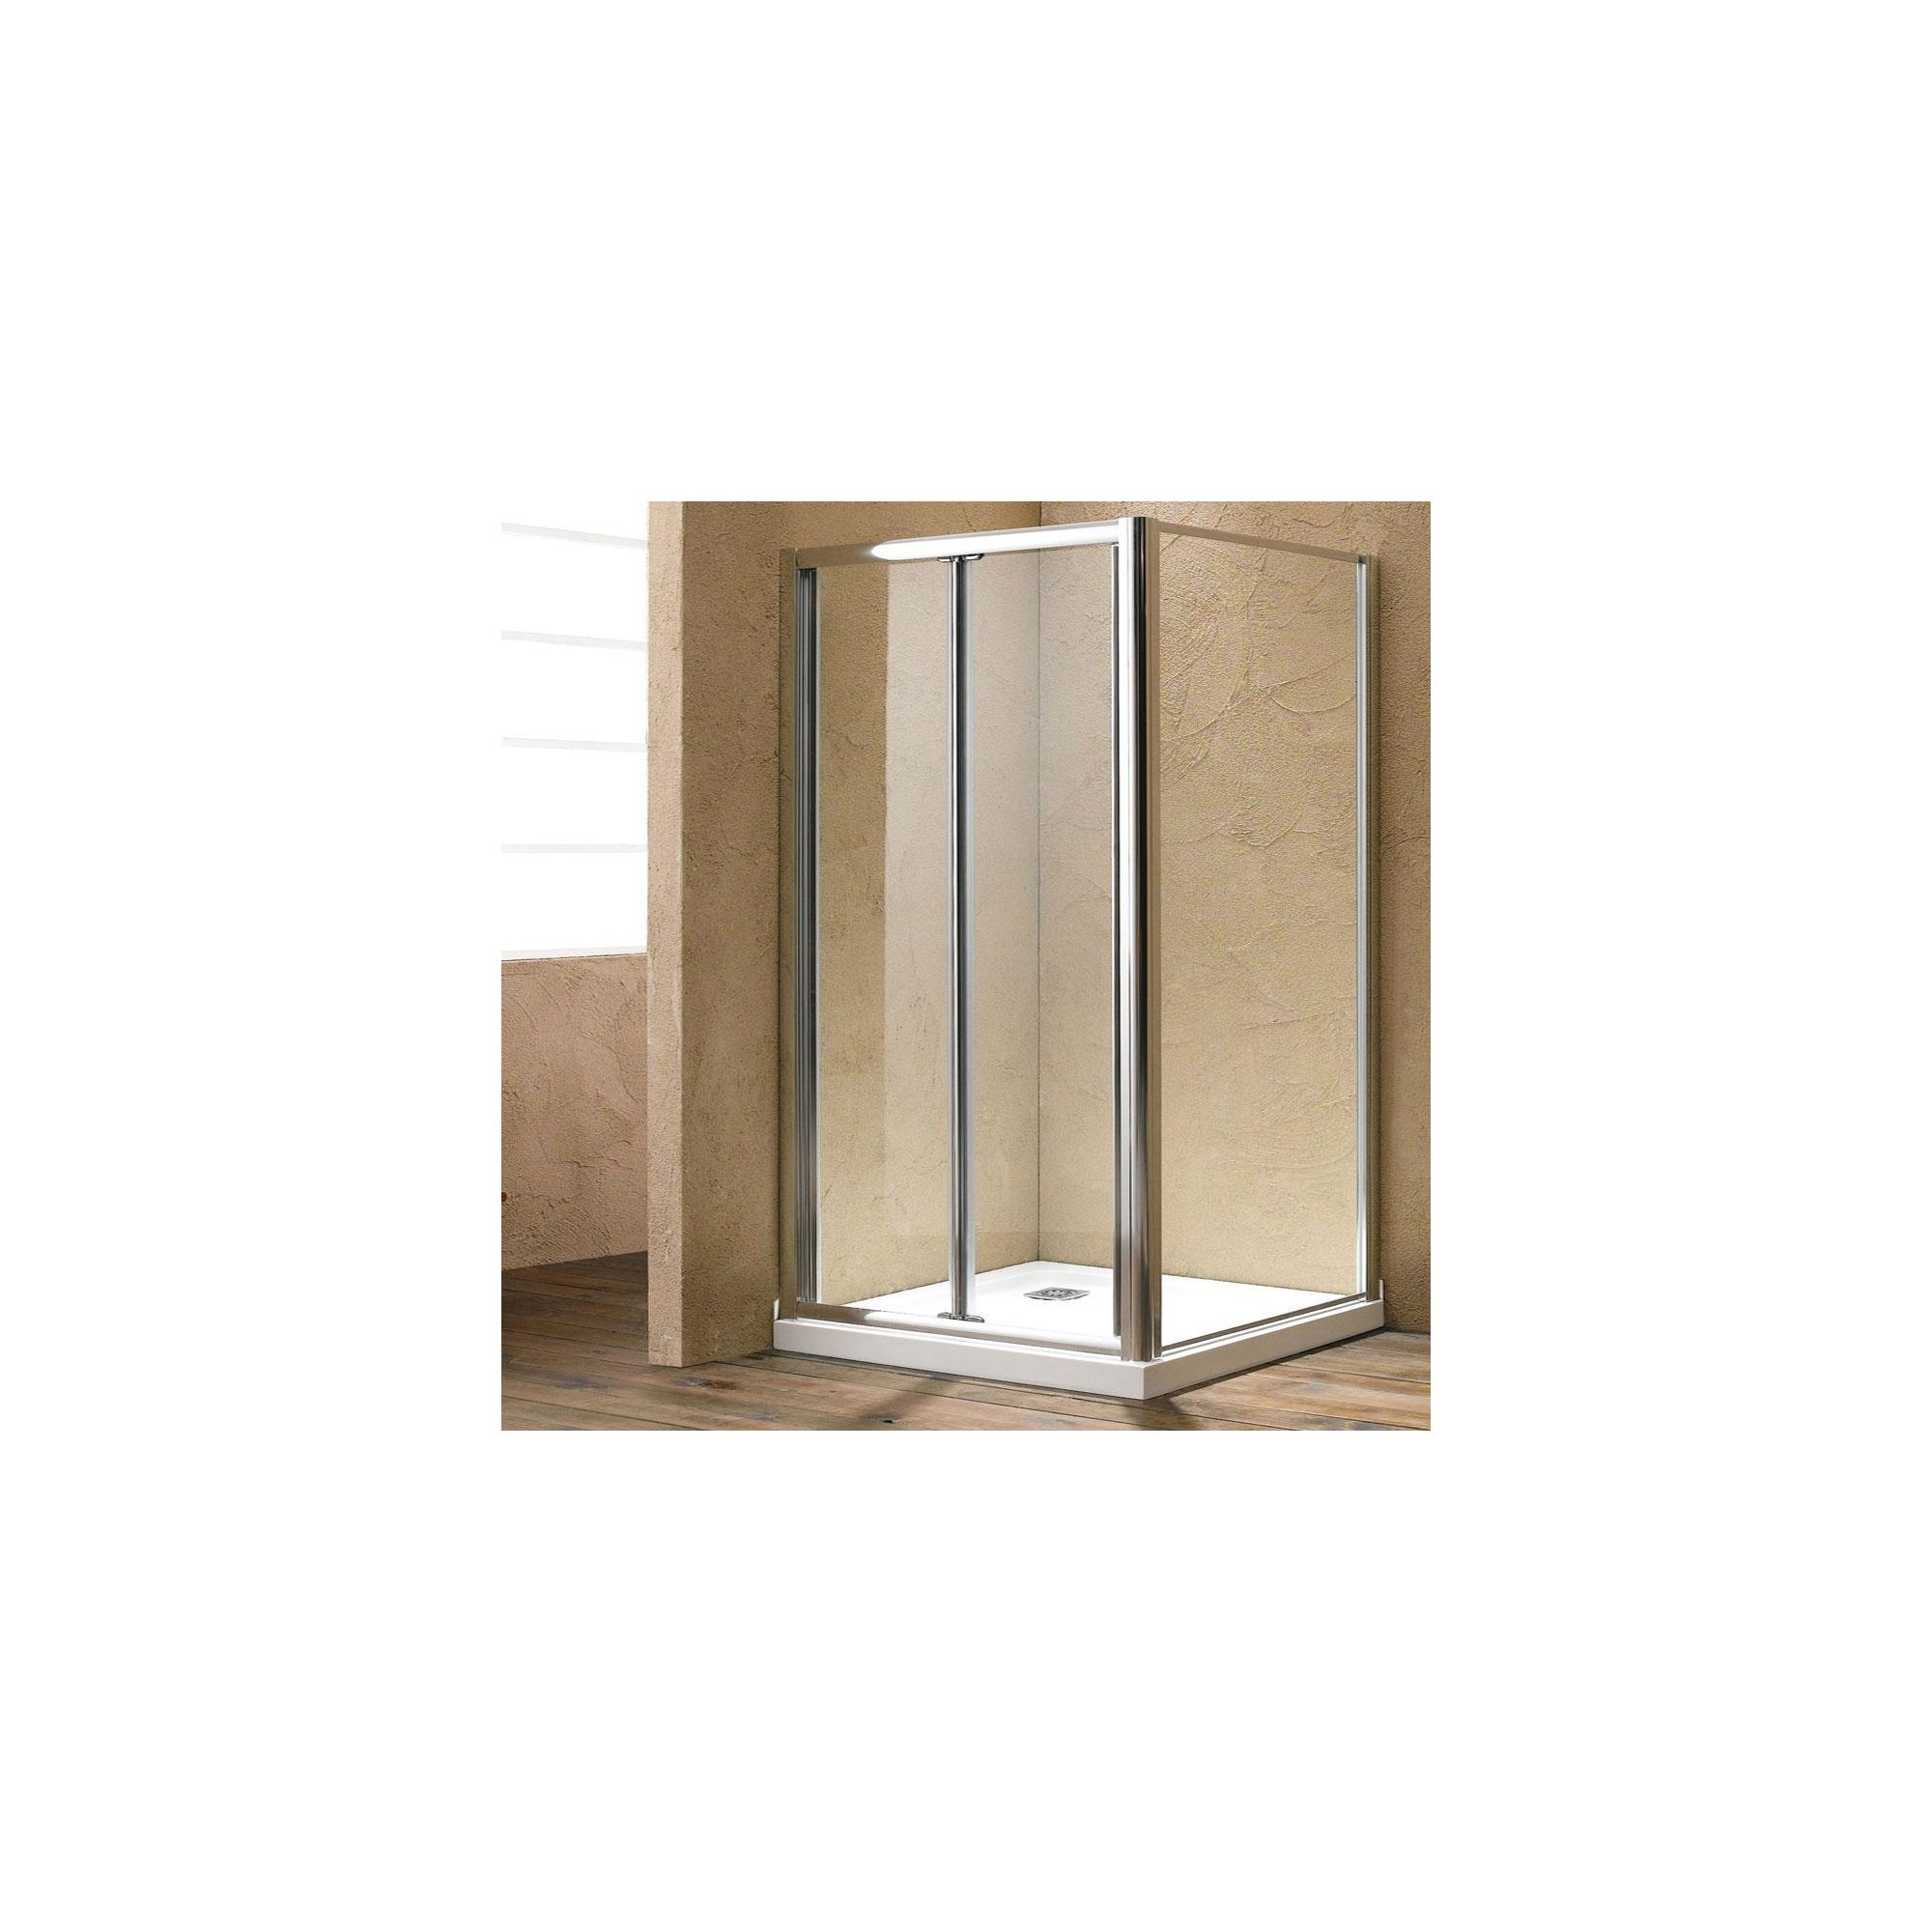 Duchy Style Single Bi-Fold Door Shower Enclosure, 760mm x 760mm, 6mm Glass, Low Profile Tray at Tescos Direct